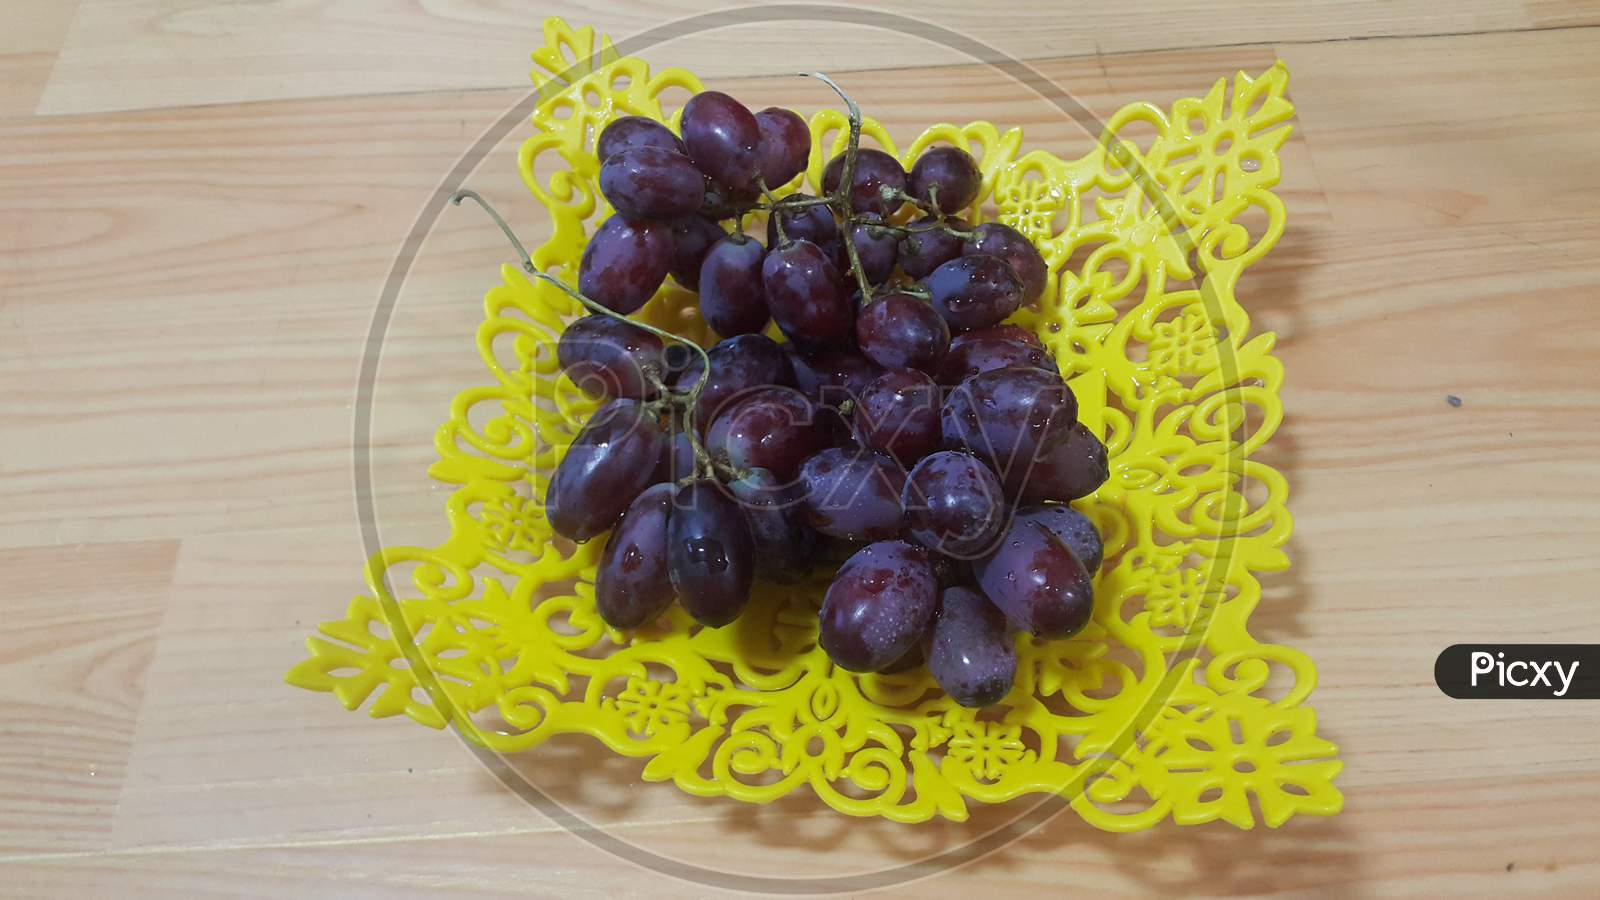 Close Up View Of Bunches Of Brown Grapes Served In Yellow Plastic Fruit Tray